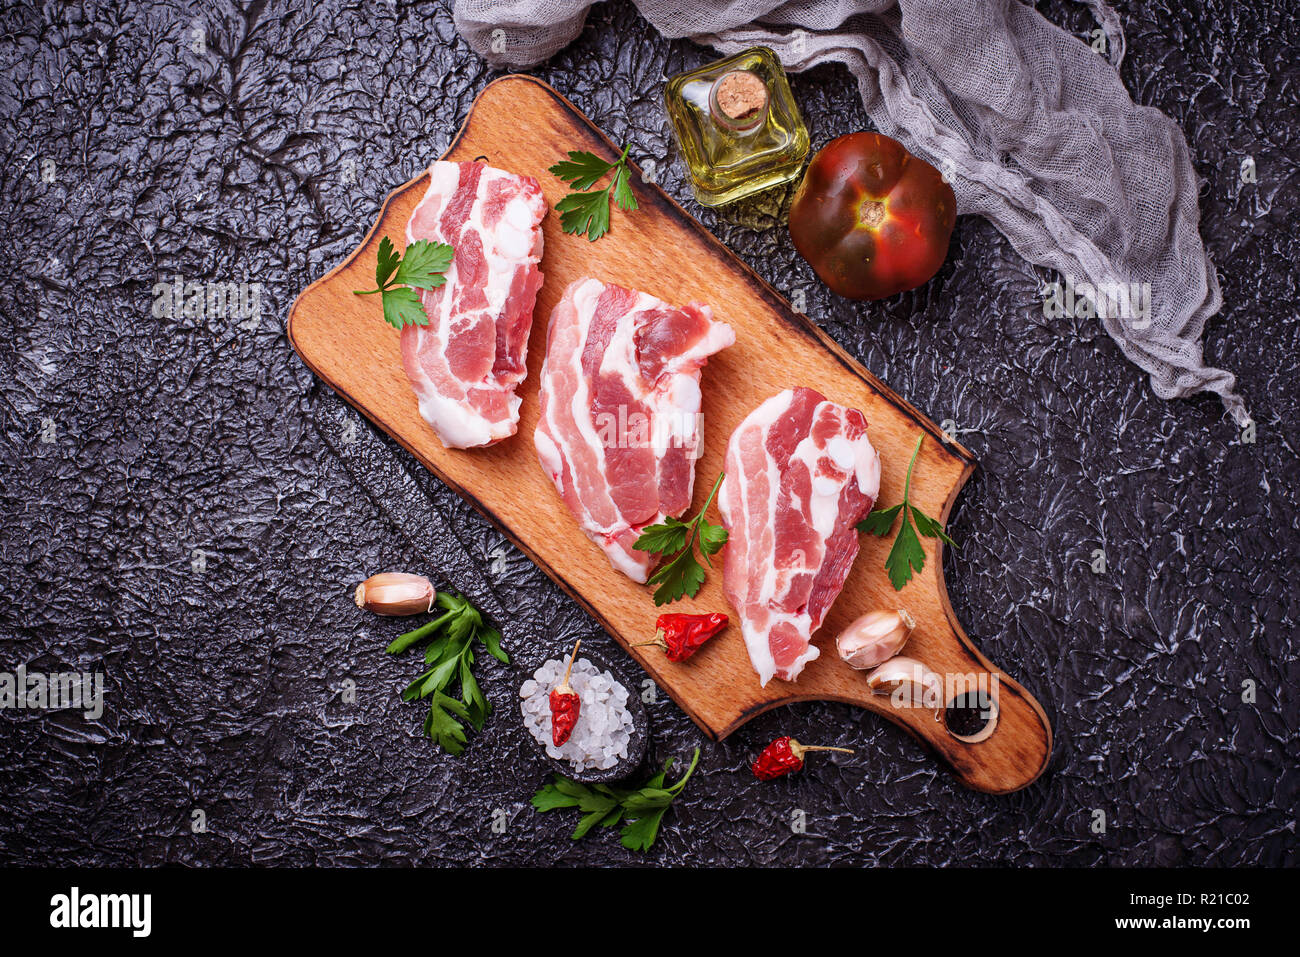 Raw pork meat and ingredients for cooking - Stock Image